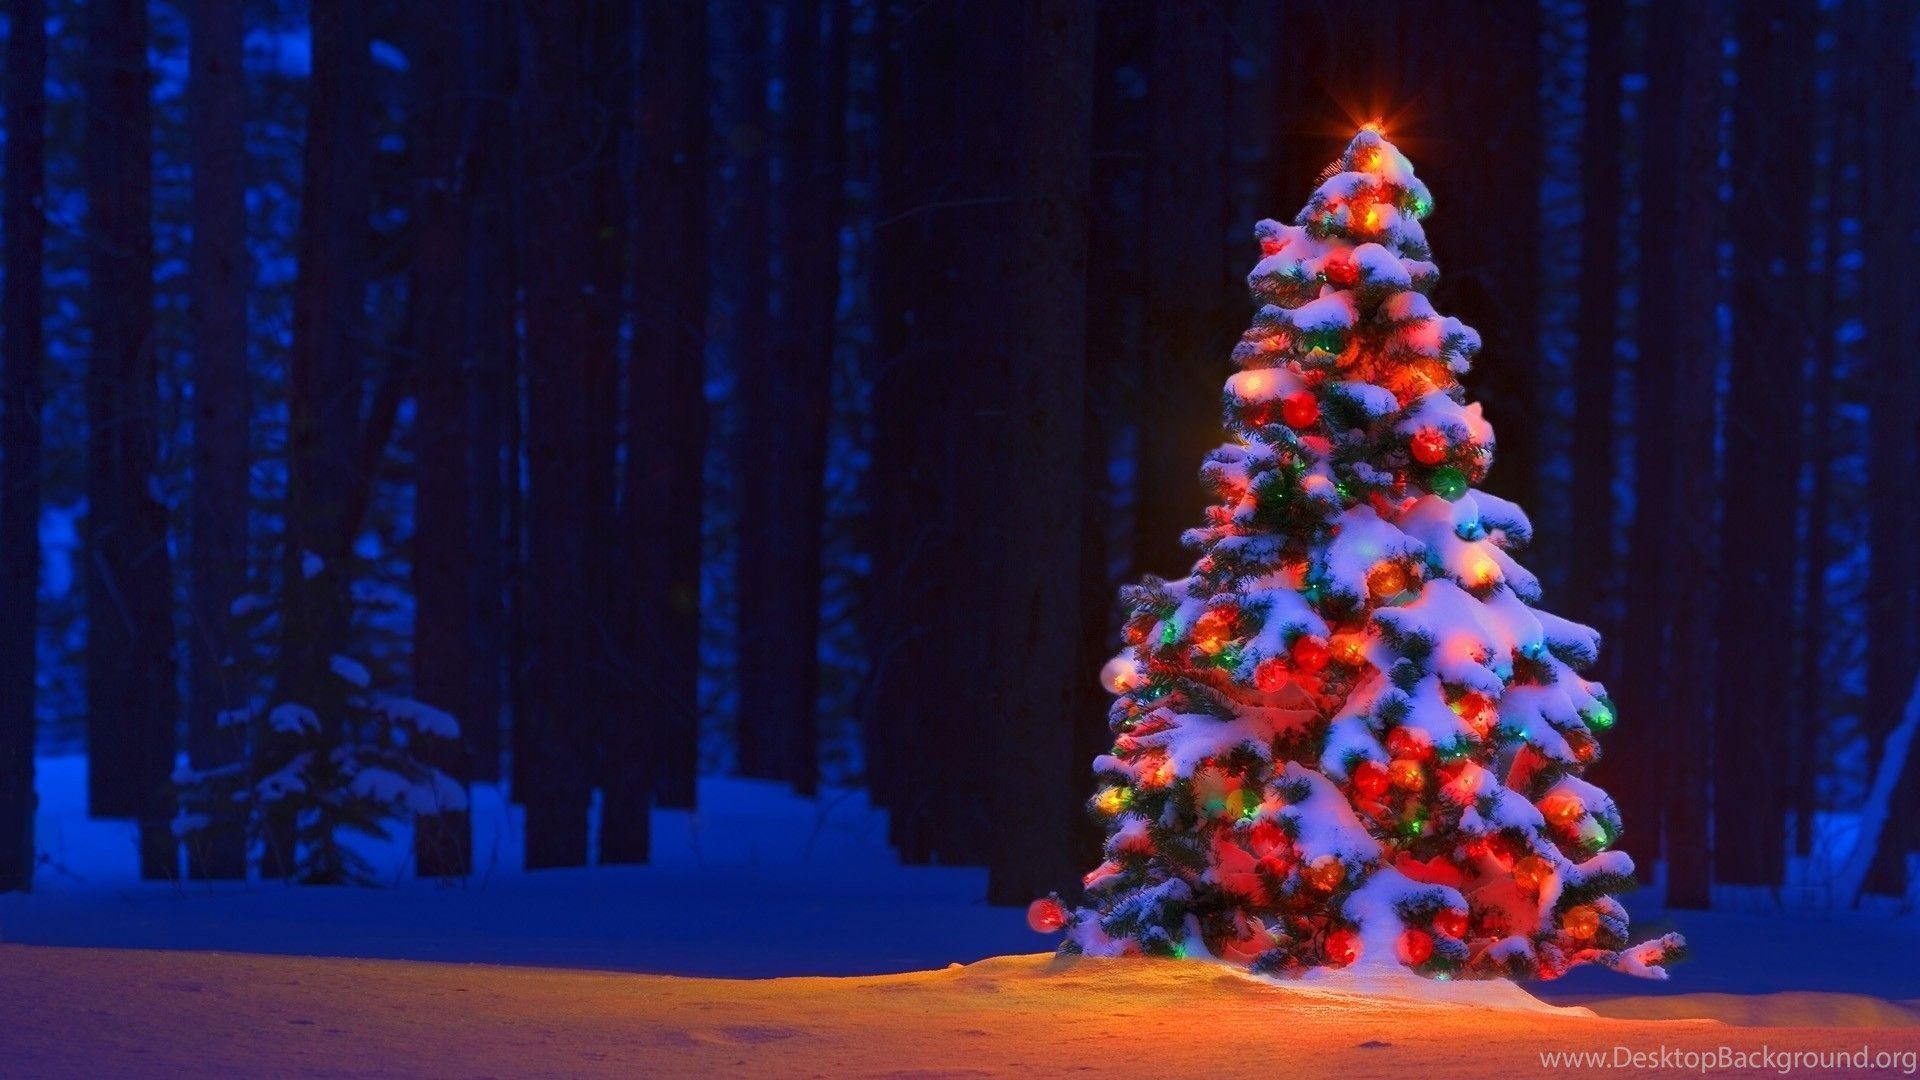 Christmas Lights Wallpapers HD Pictures Desktop Background